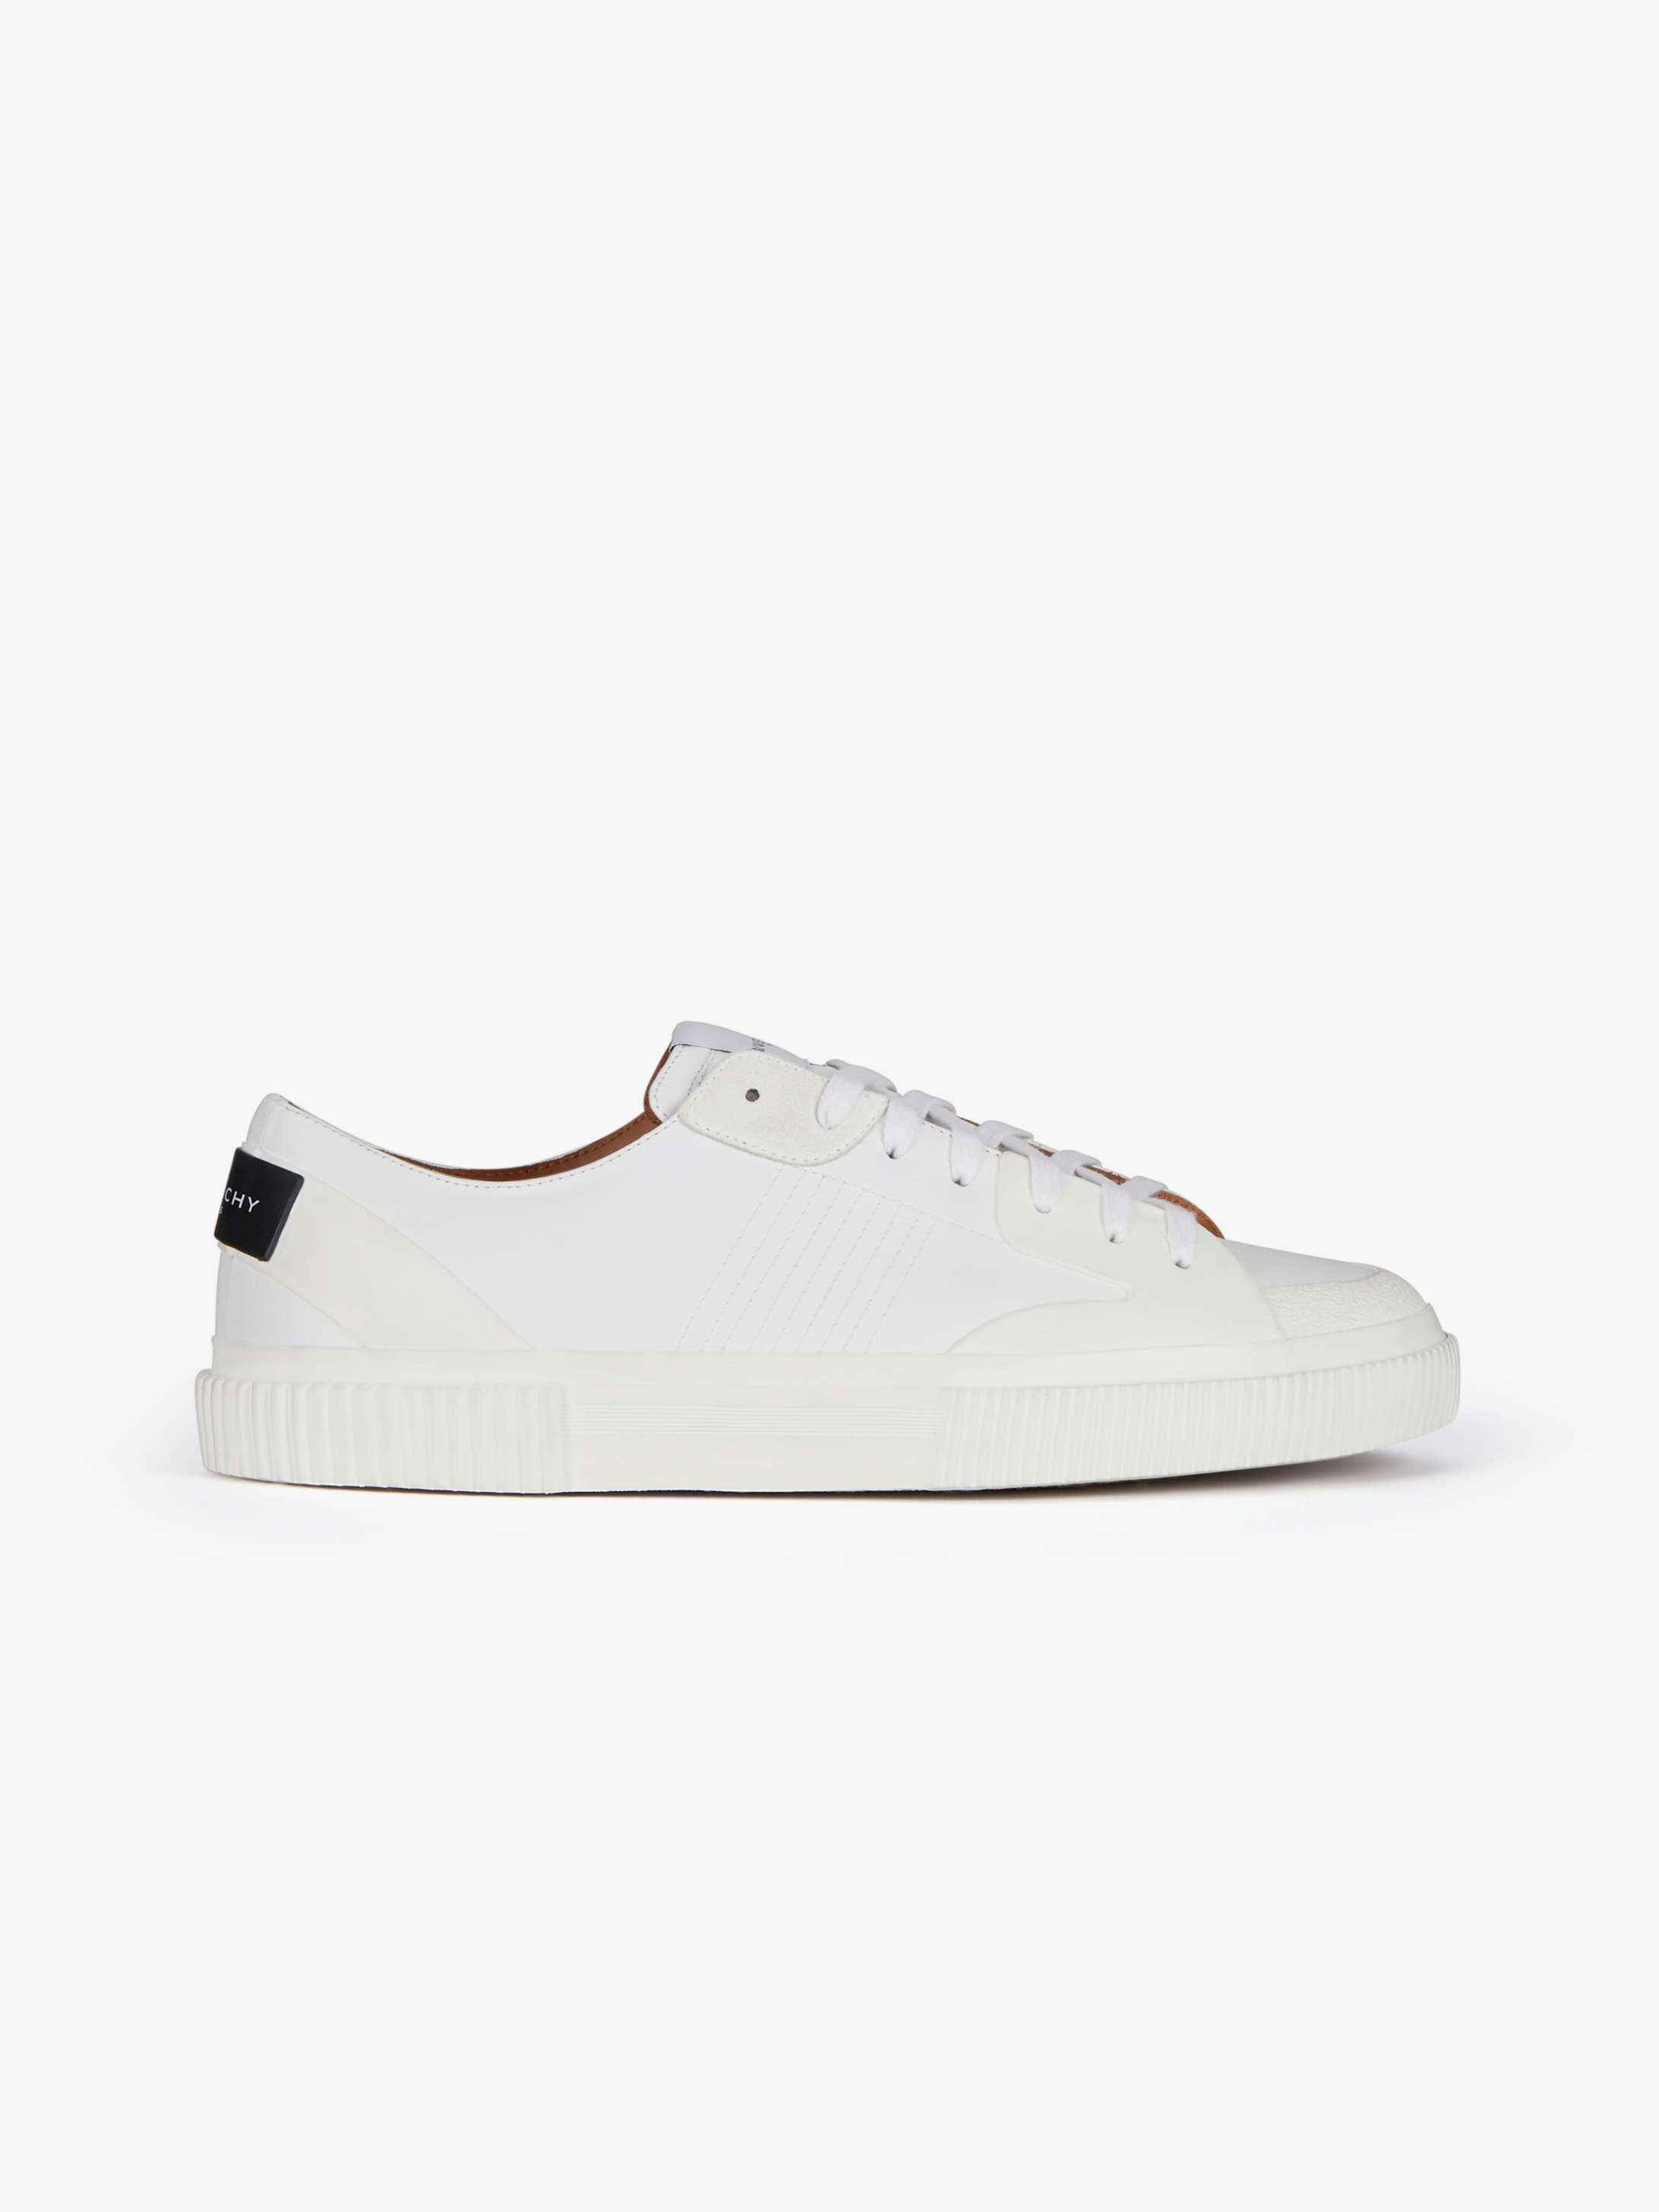 Low sneakers in leather